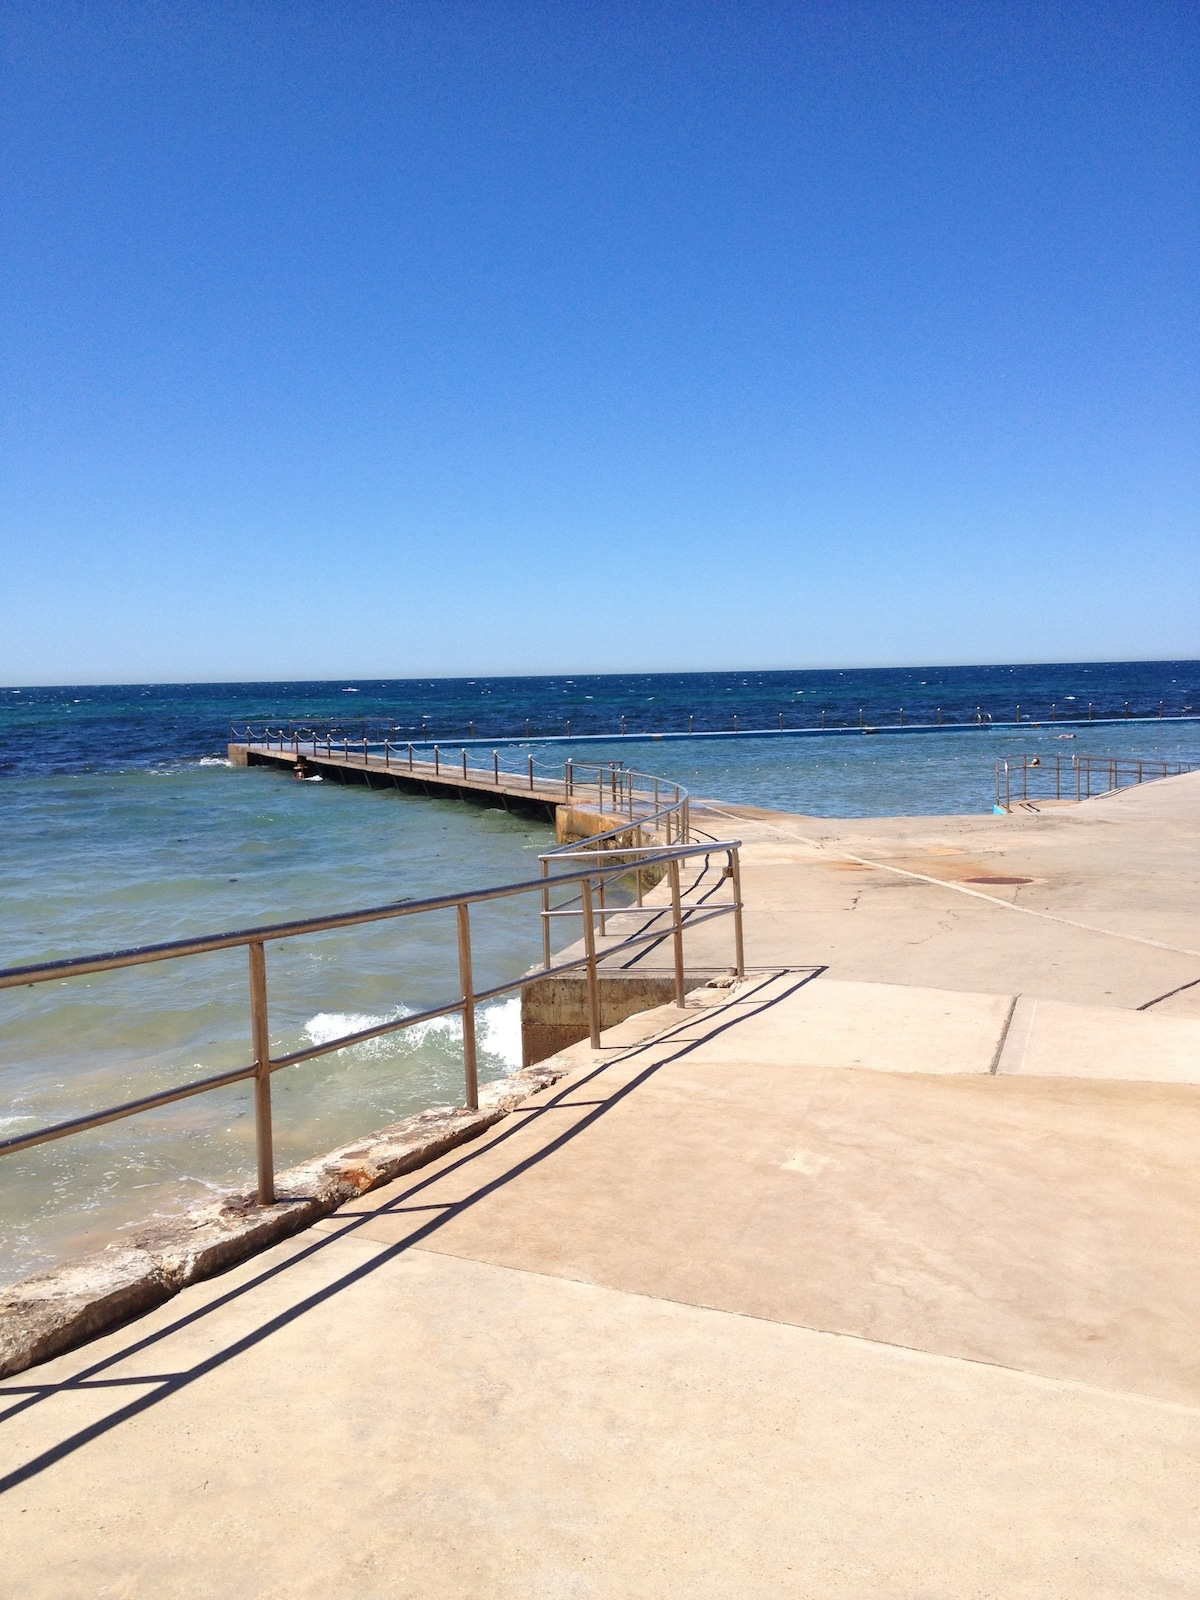 Collaroy Rock Pool, an ocean rock pool at the southern end of Collaroy Beach